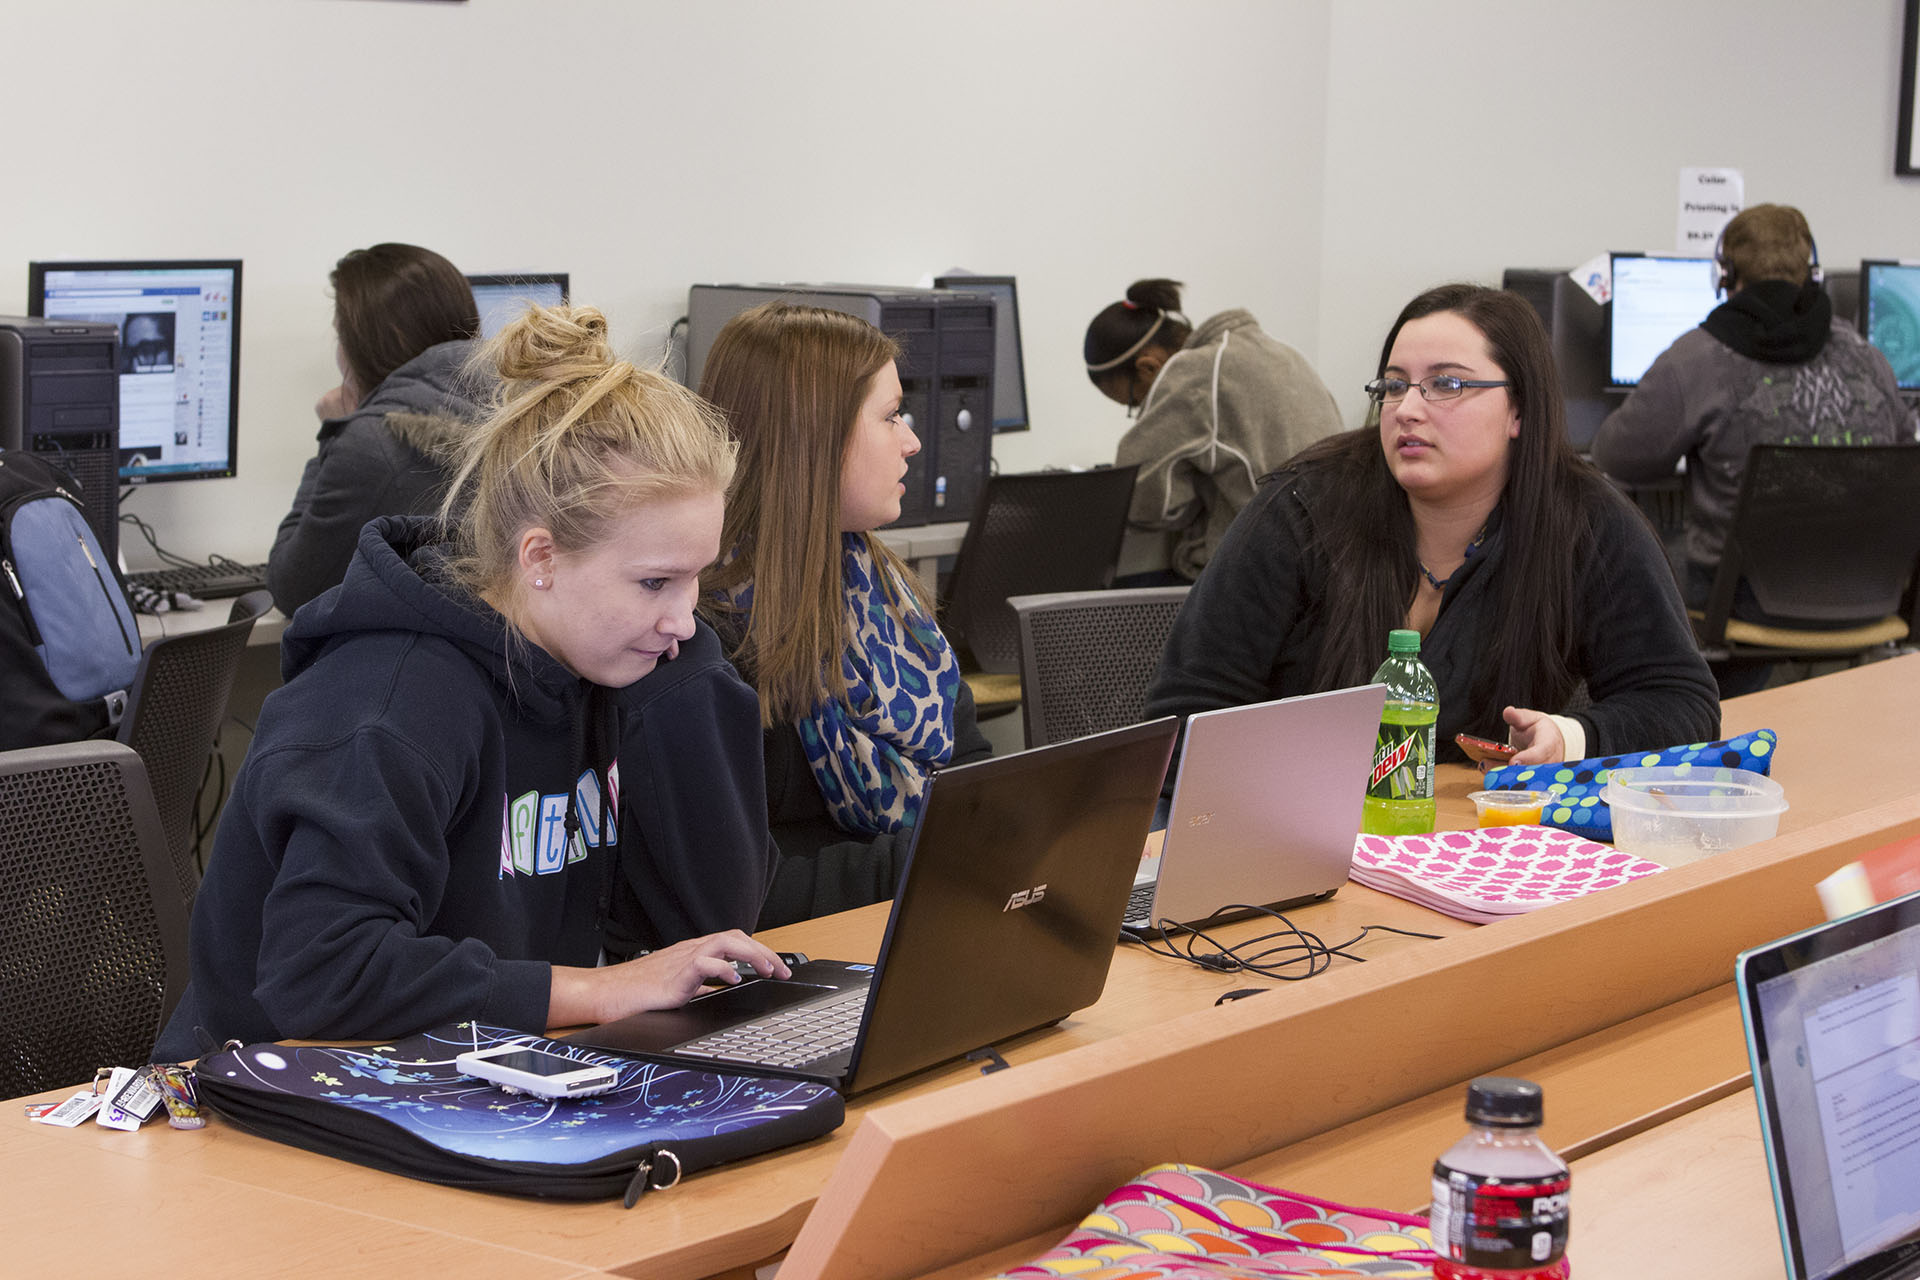 Students tutoring in the learning center